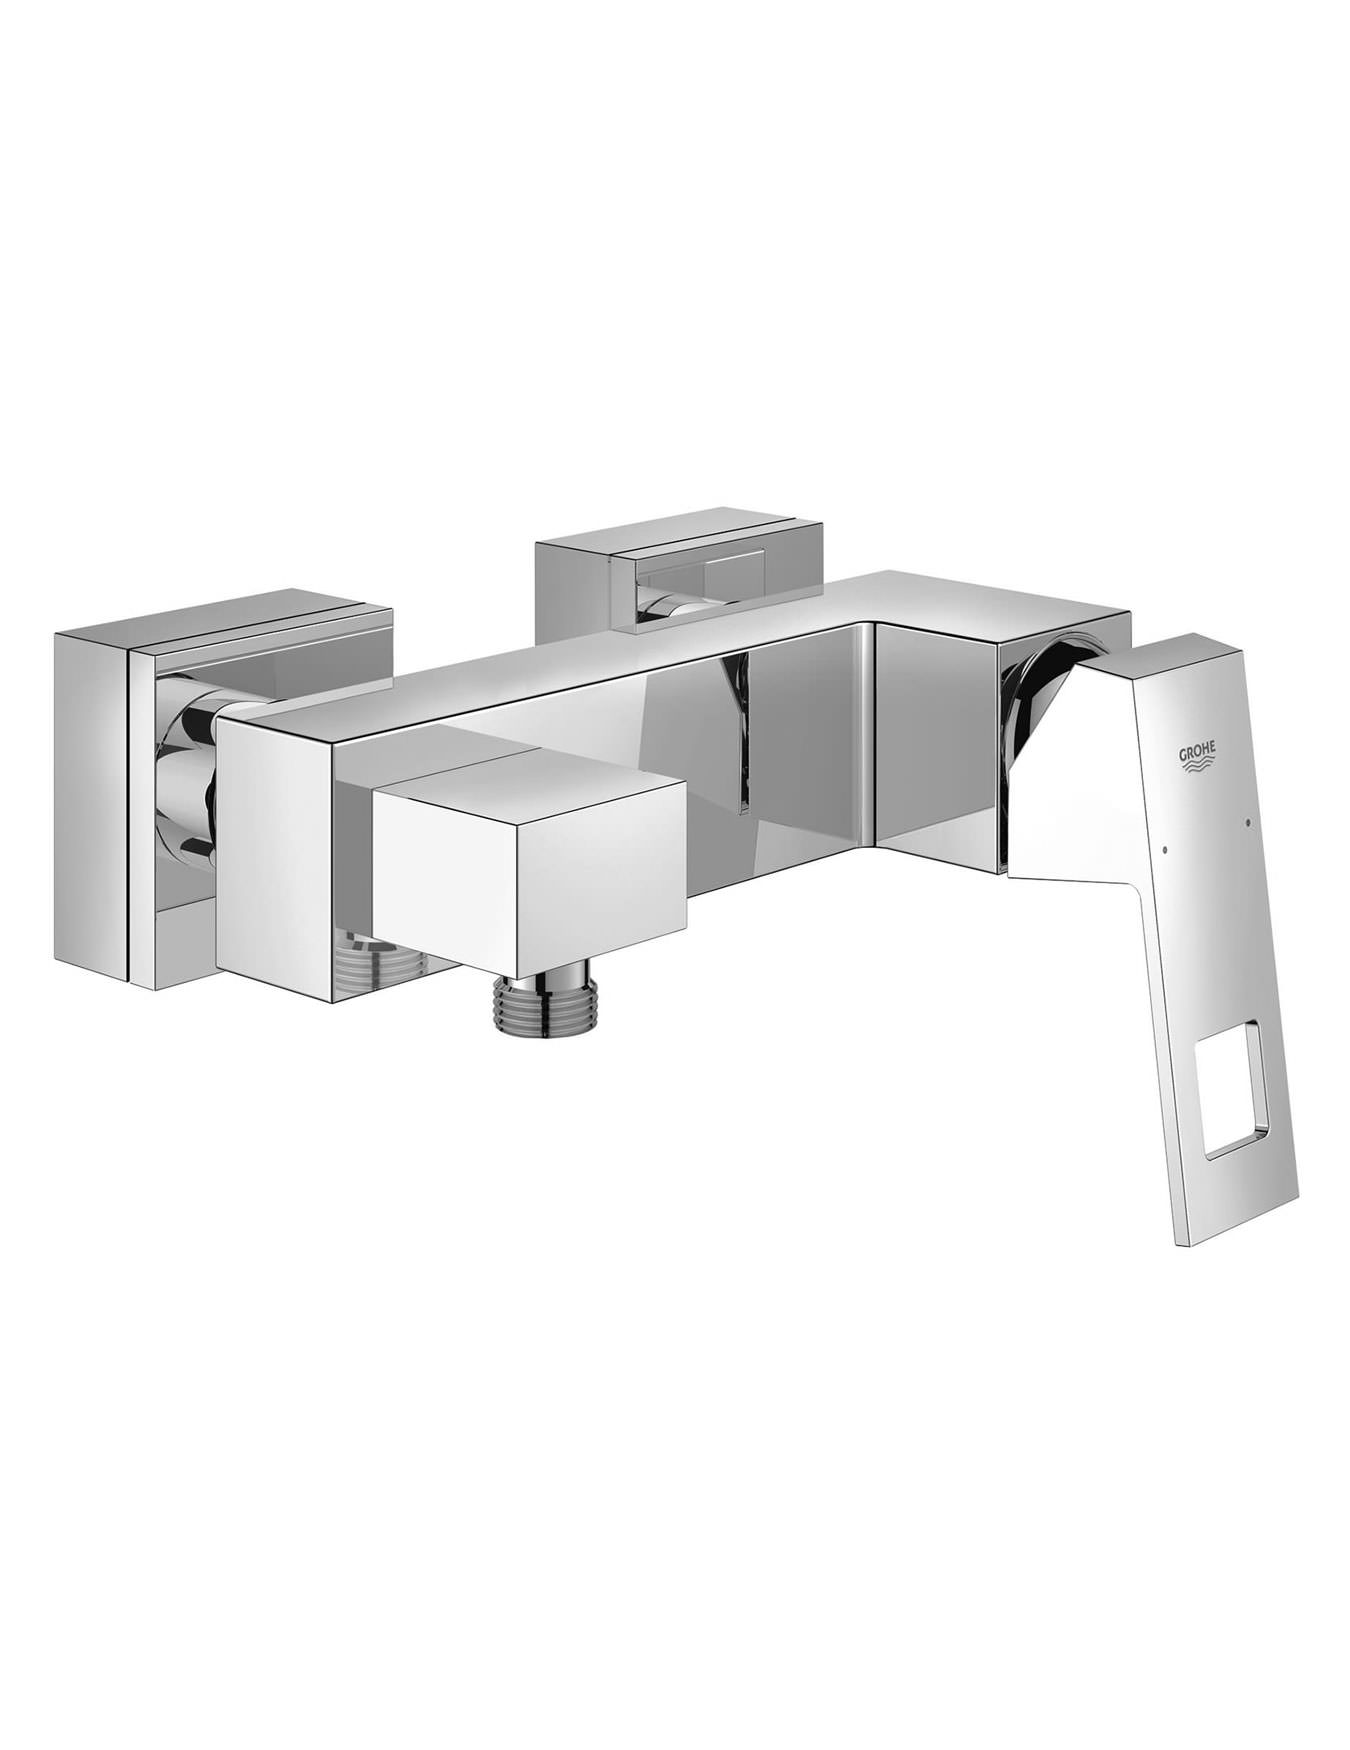 Grohe Eurocube Wall Mounted Single Lever Shower Mixer Valve